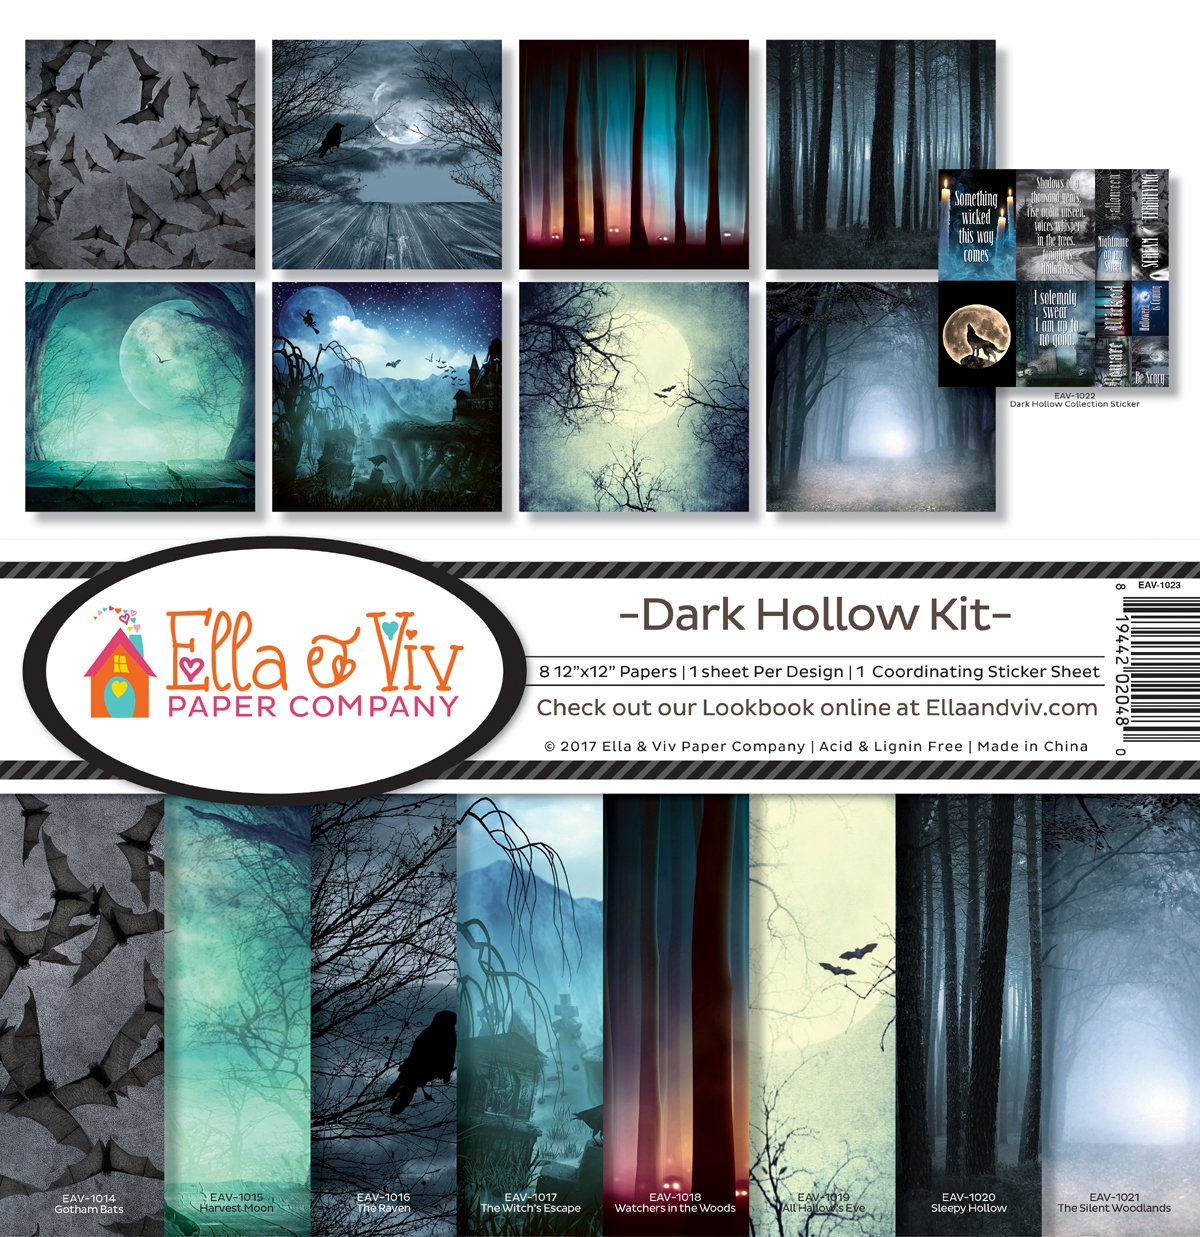 Ella & Viv by Reminisce Dark Hallow Scrapbook Collection Kit EAV-1023